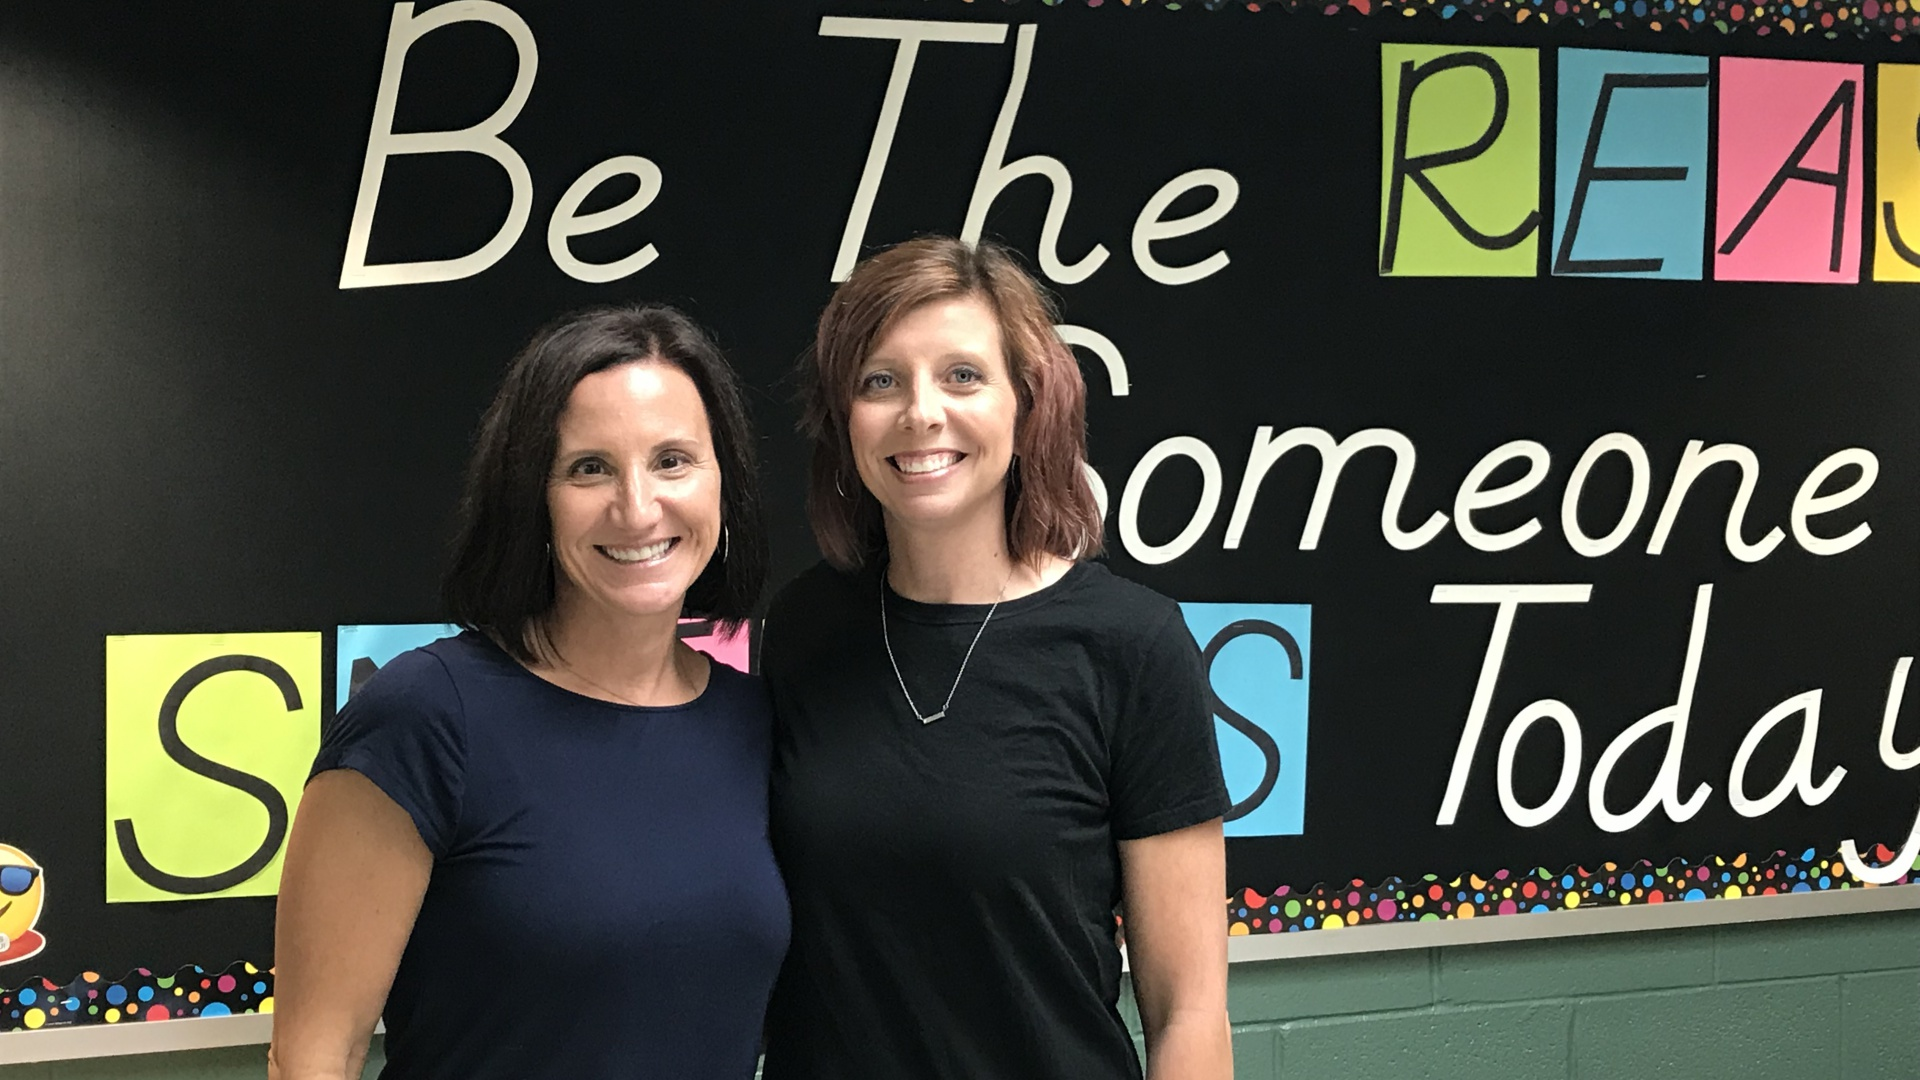 Mrs. Wrobel and Mrs. Edmondson, CE Social Workers